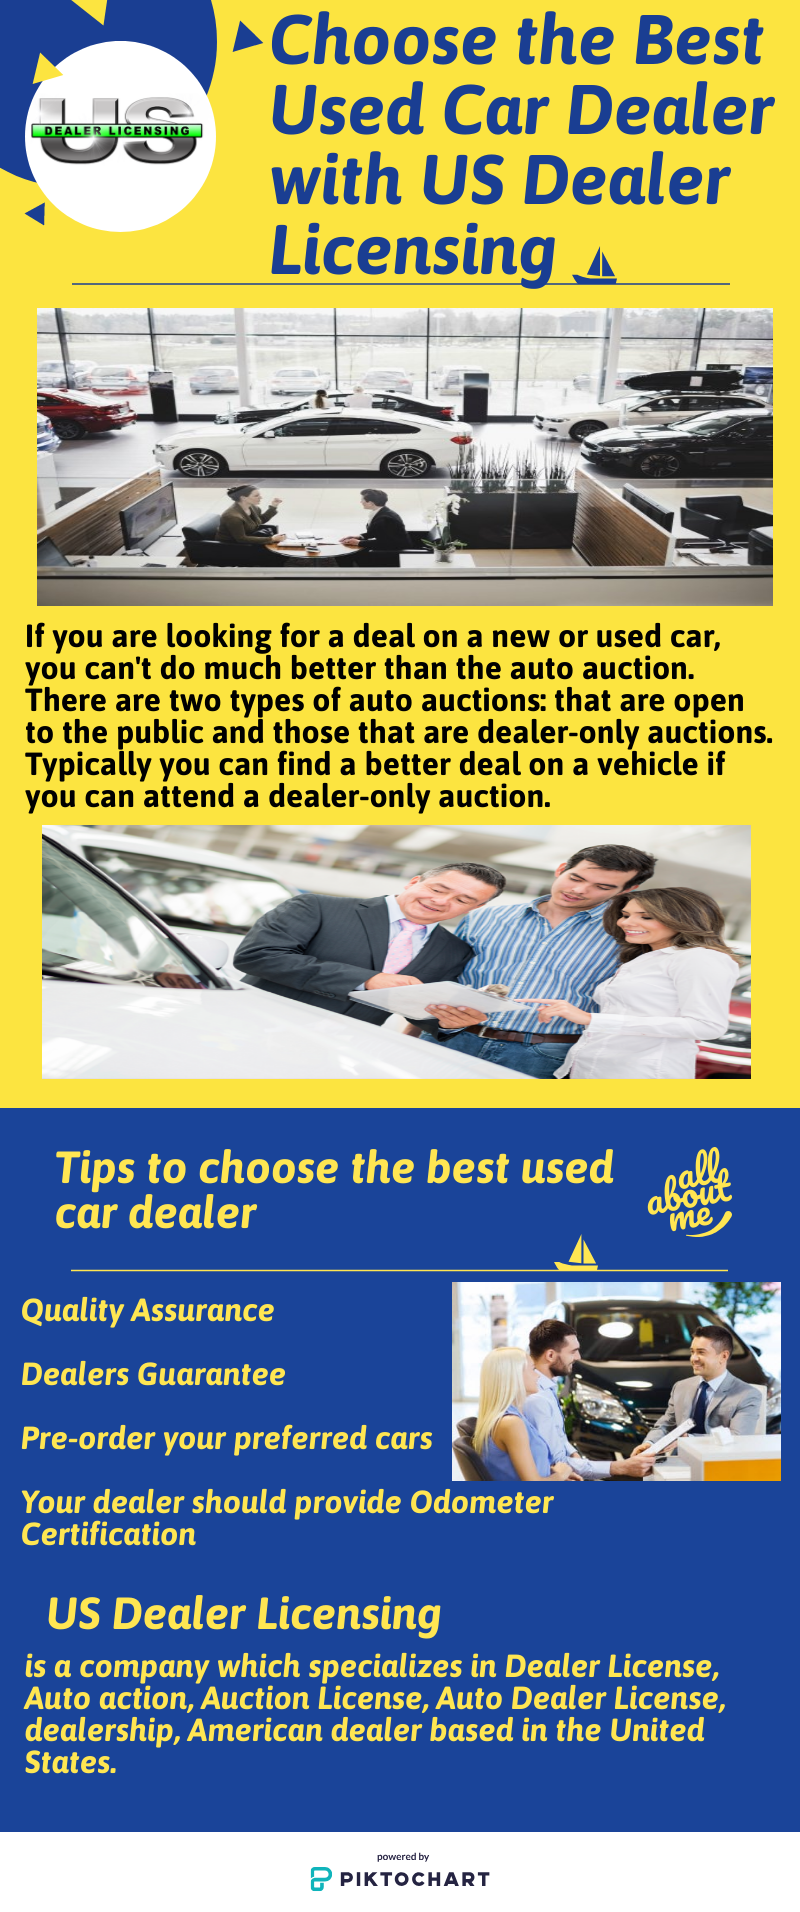 If You Are Looking For A Deal On A New Or Used Car Then Us Dealer